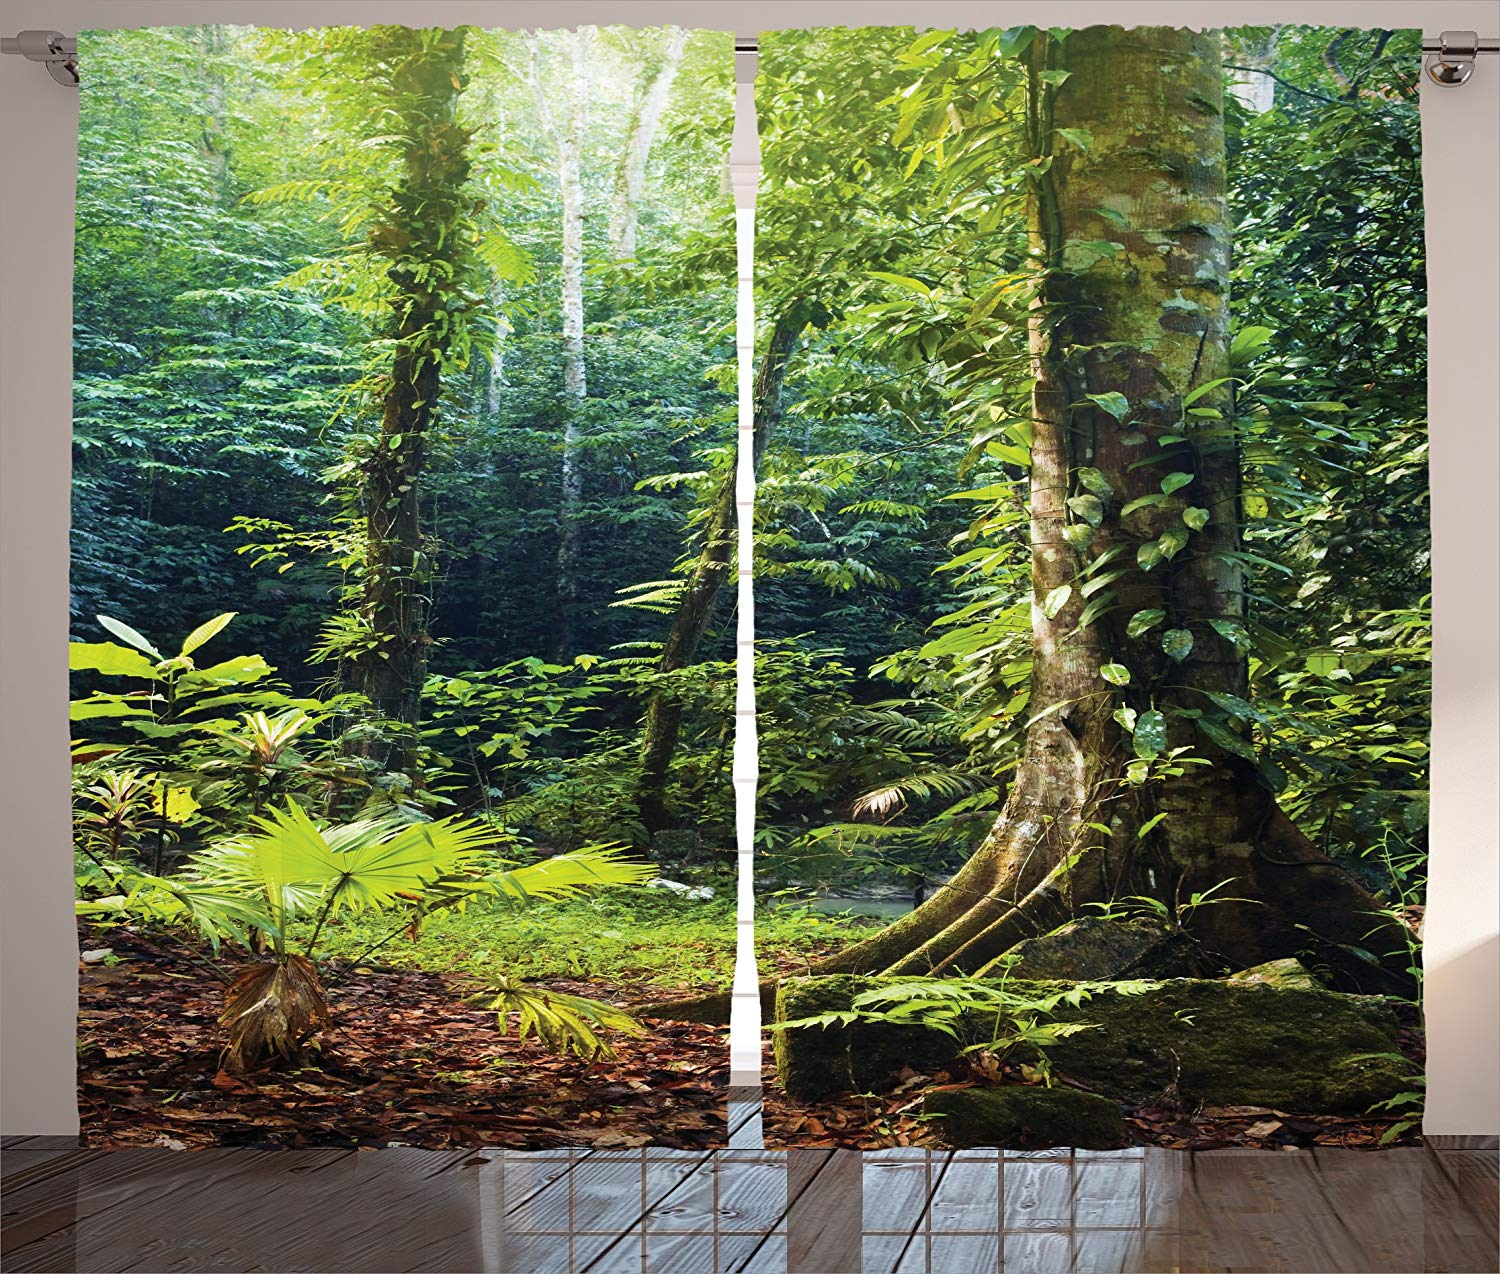 Classroom Decorations Rain Forest Curtains Morning Sunbeams Through Wild Ivy On Trees Tranquility In Nature Living Room Bedroom